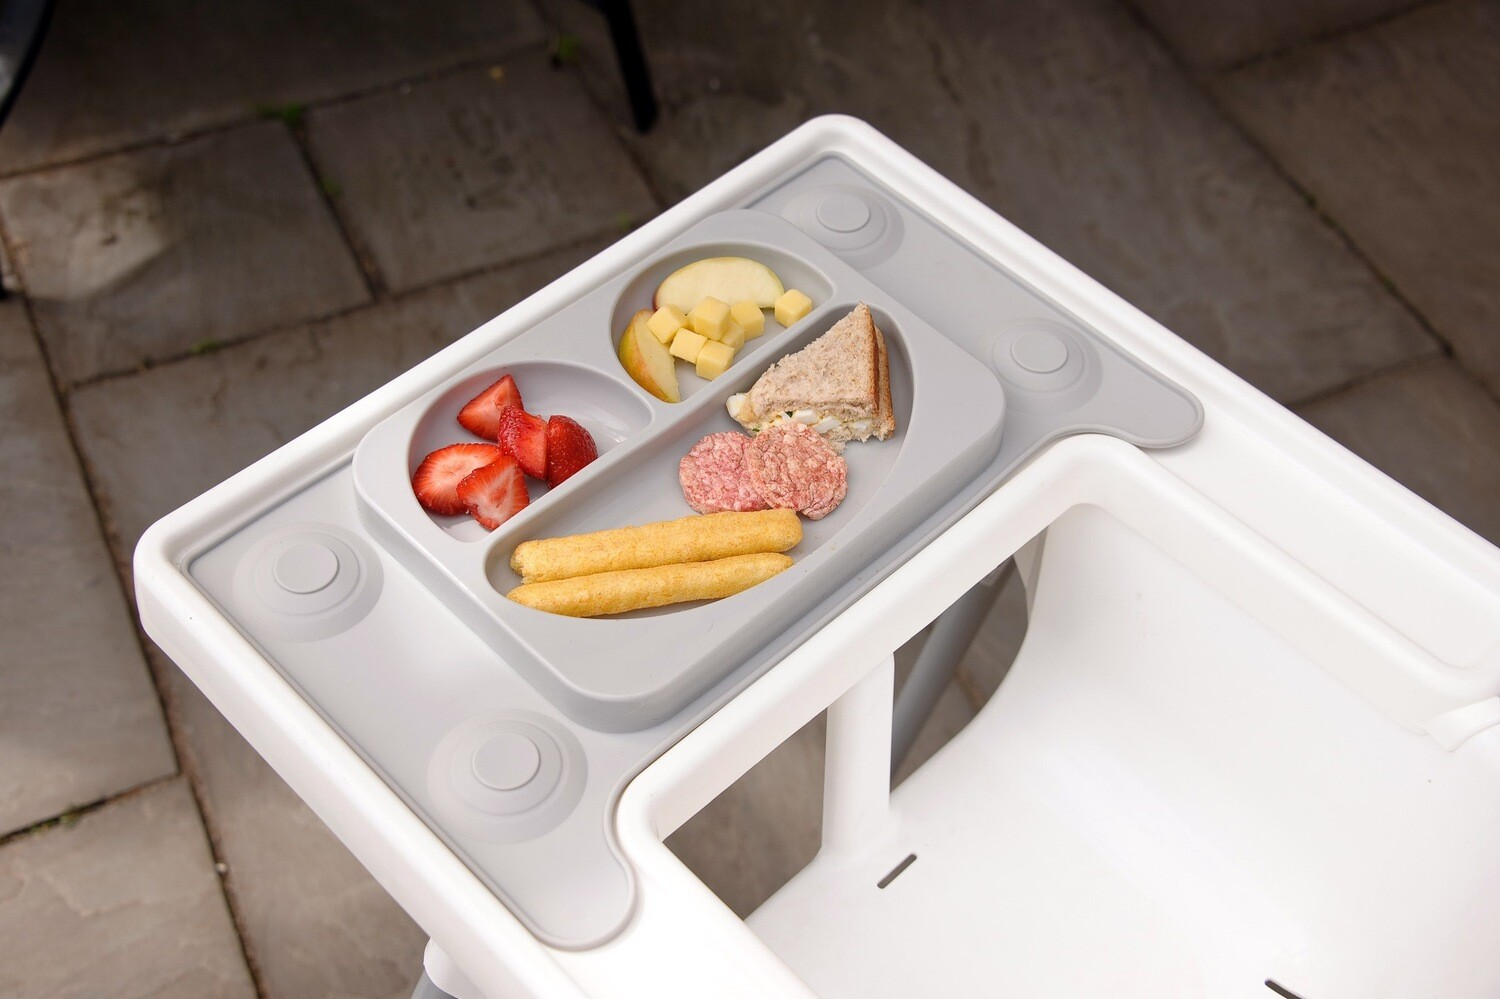 Easymat IKEA Perfect Fit Suction Plate